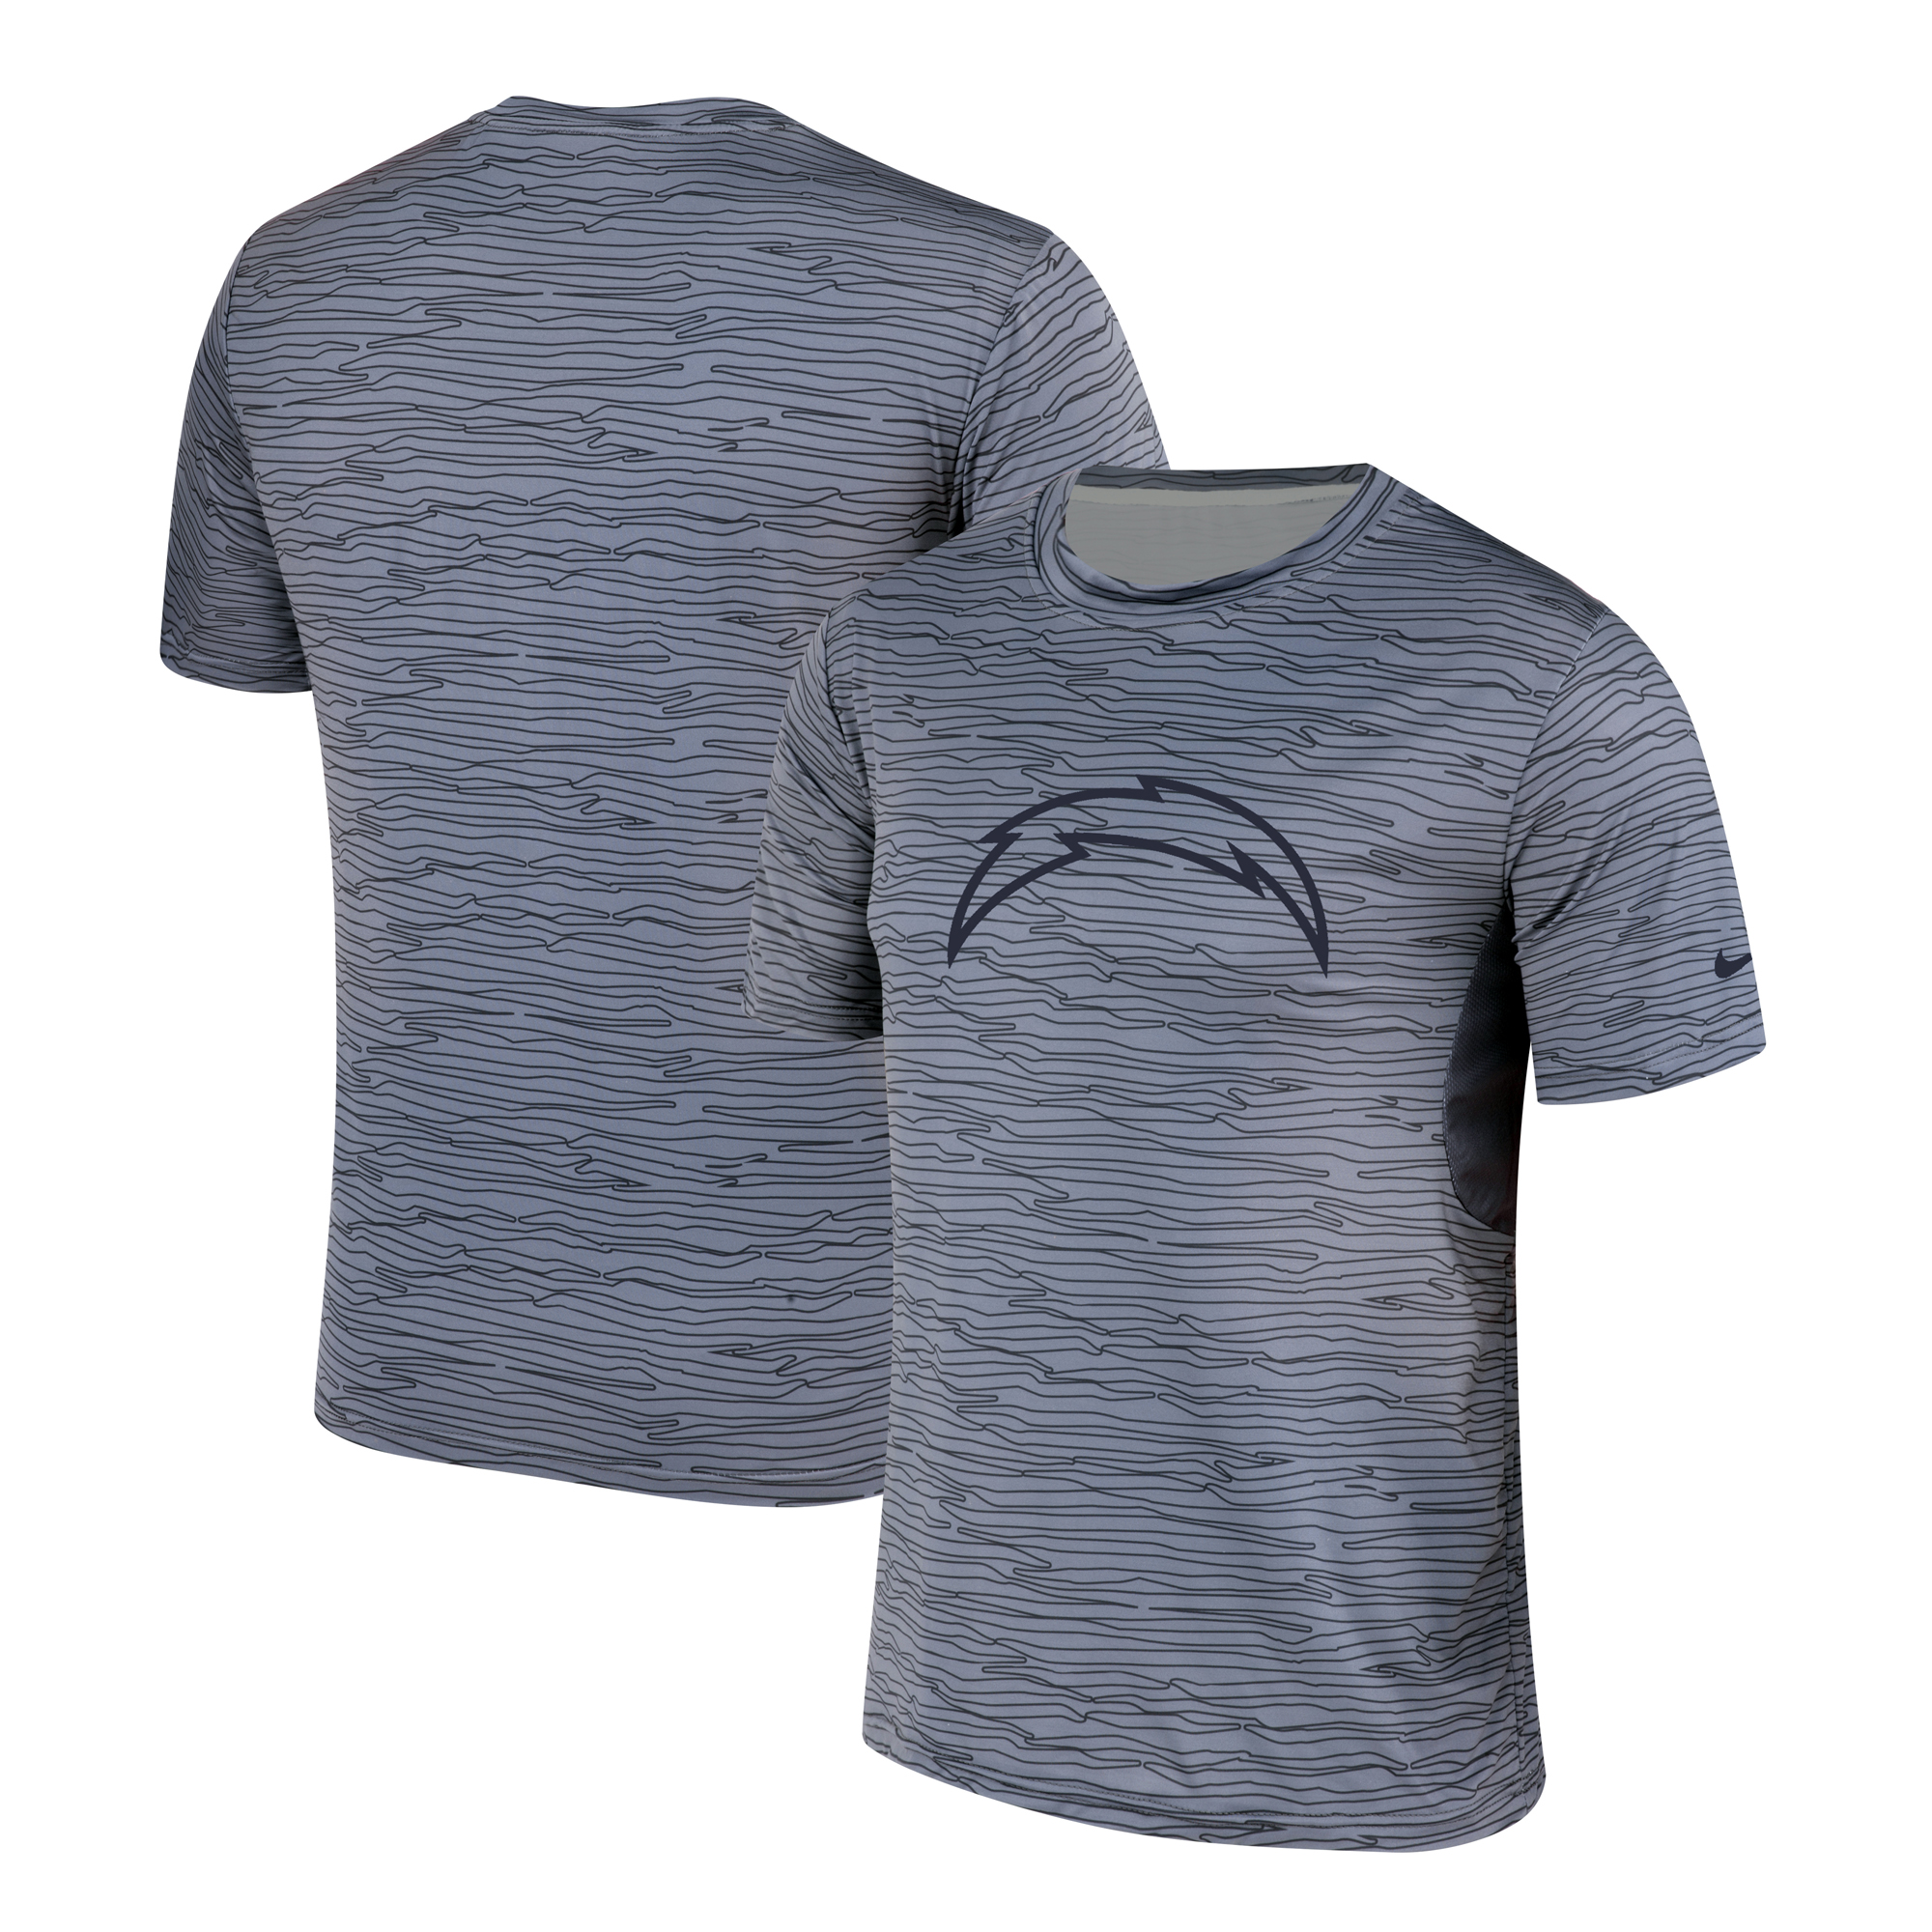 Los Angeles Chargers Nike Gray Black Striped Logo Performance T-Shirt